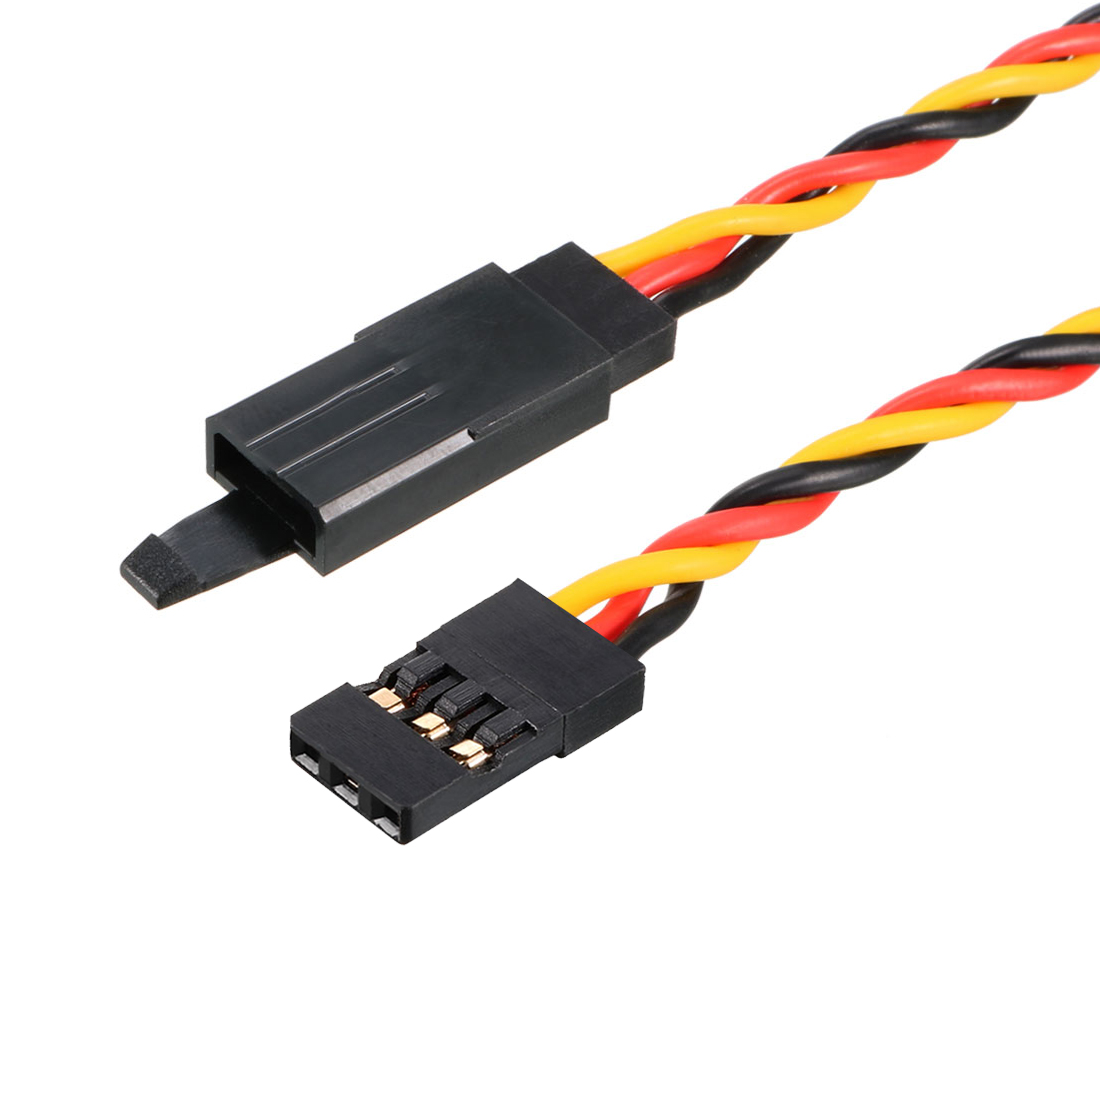 35 Inches 900mm 3-pin Servo Extension Cable Anti-interference for RC Futaba Lock